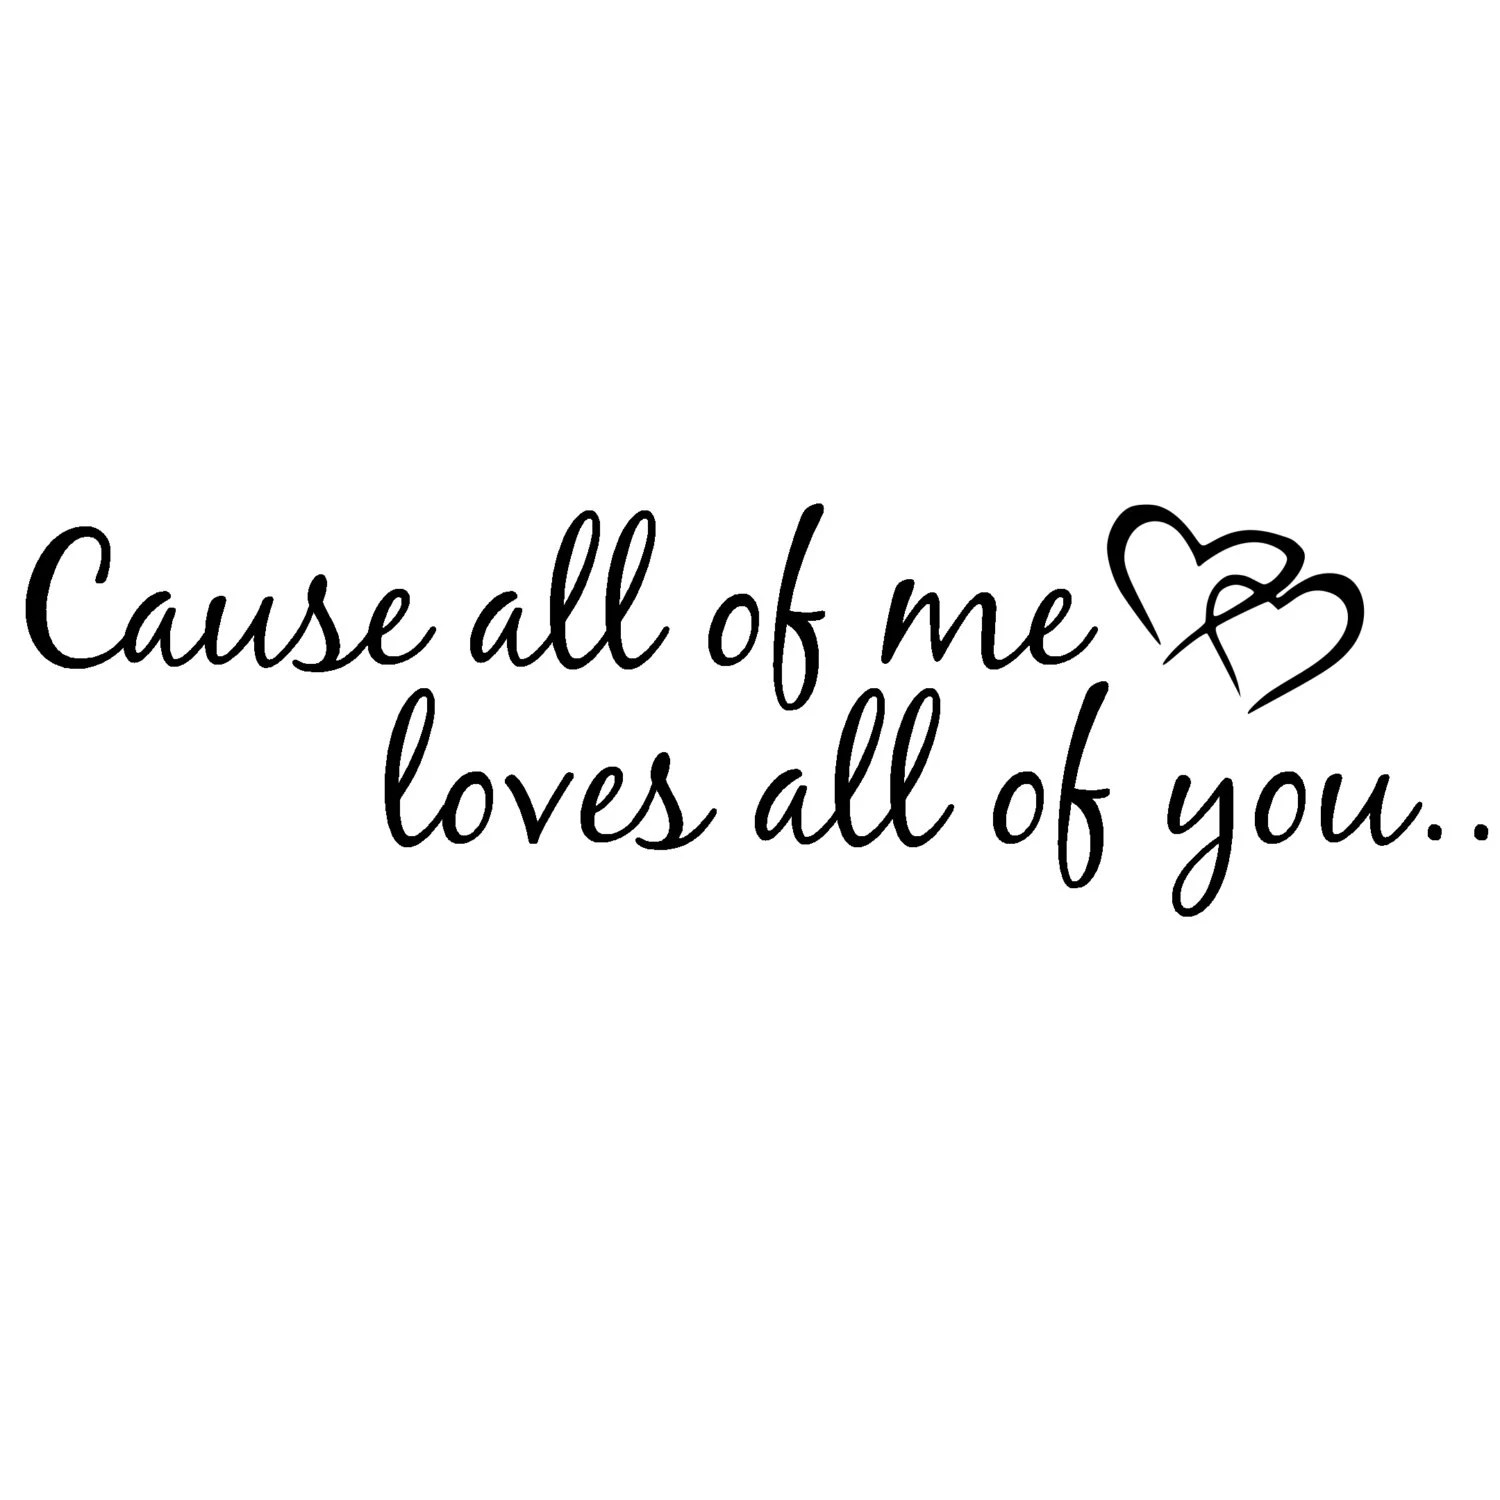 Items similar to Cause all of me loves all of you wall art